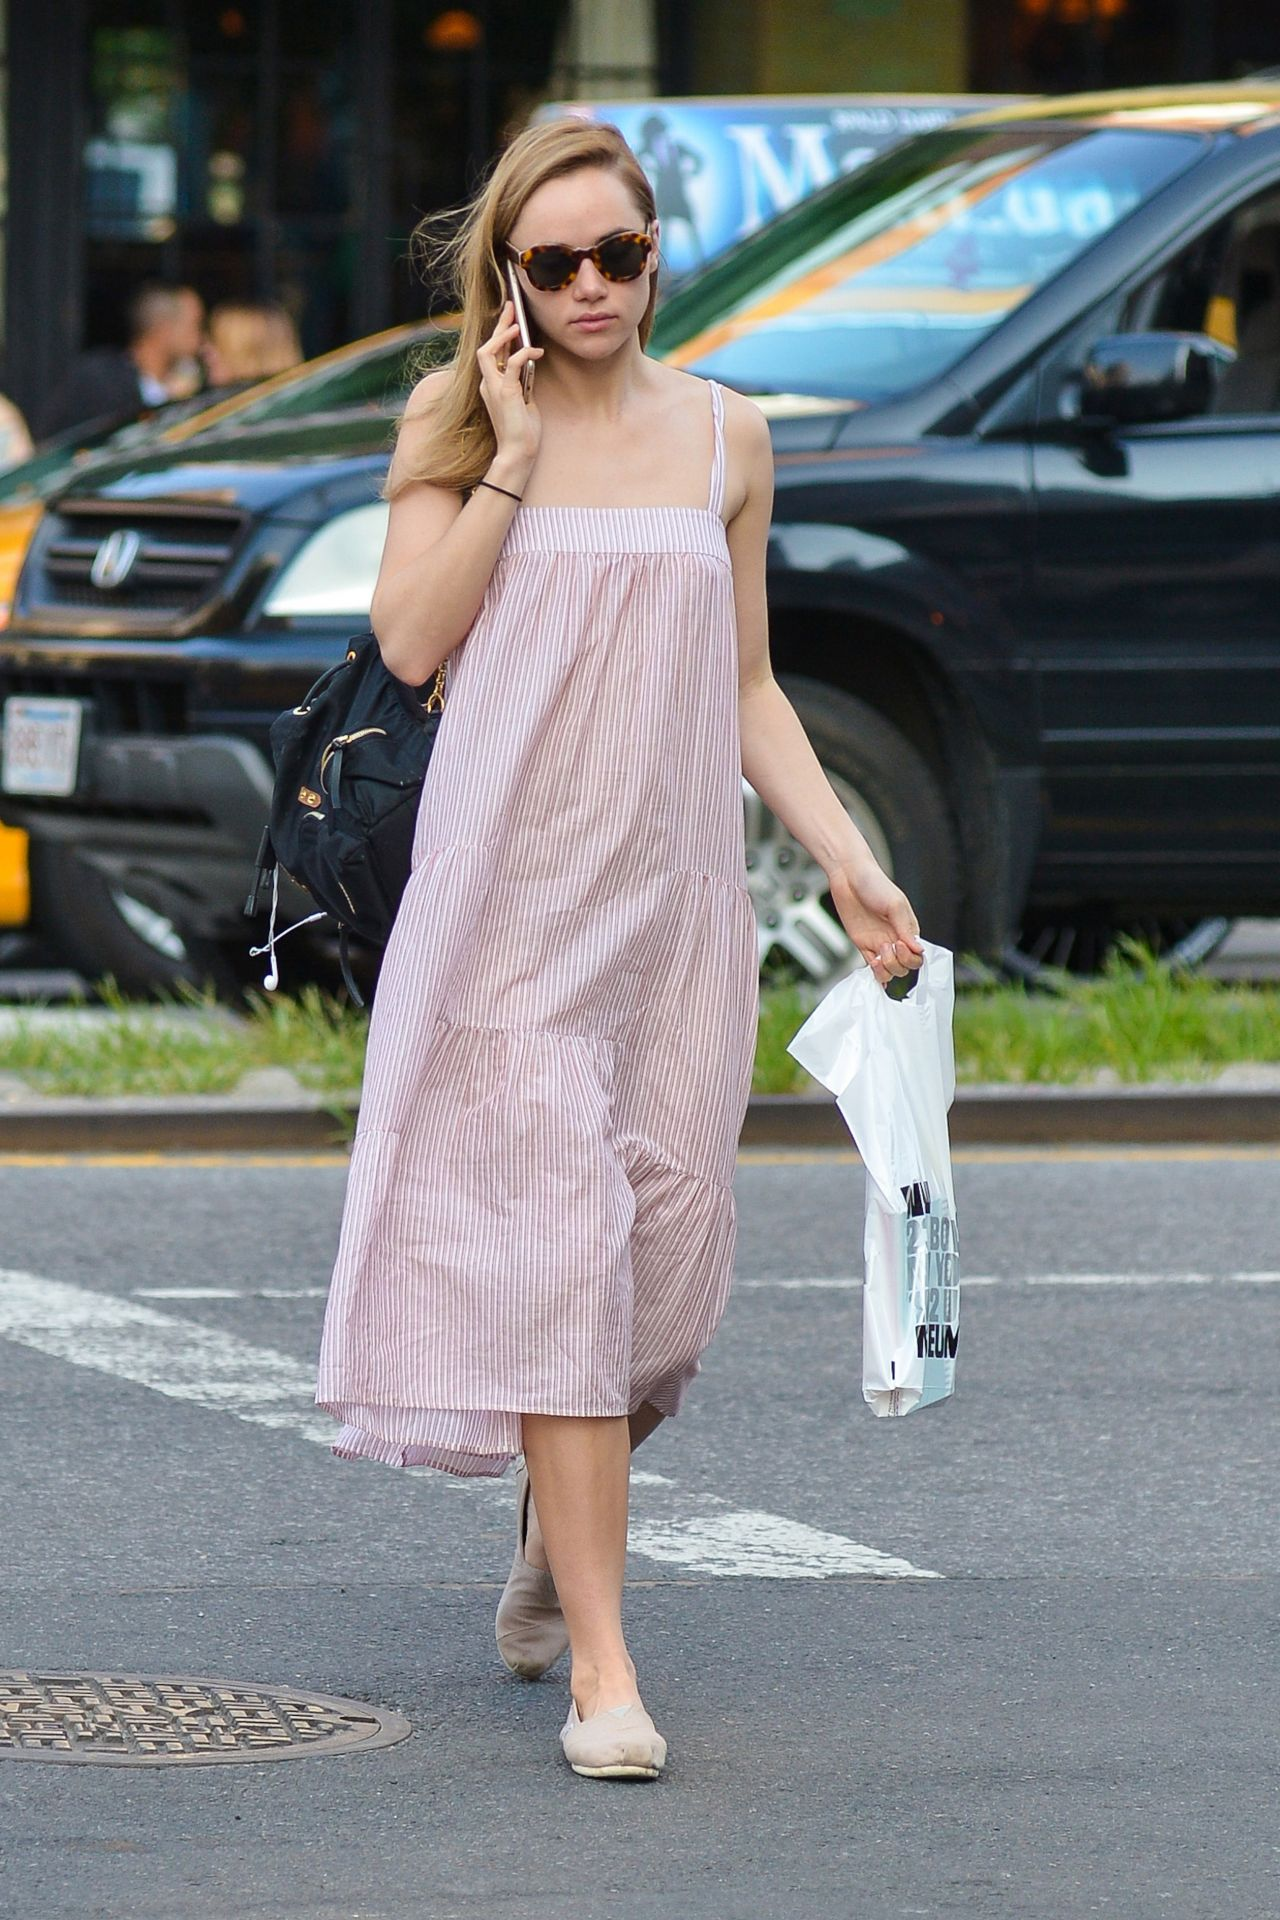 suki waterhouse in summer dress new york city 7 20 2016. Black Bedroom Furniture Sets. Home Design Ideas